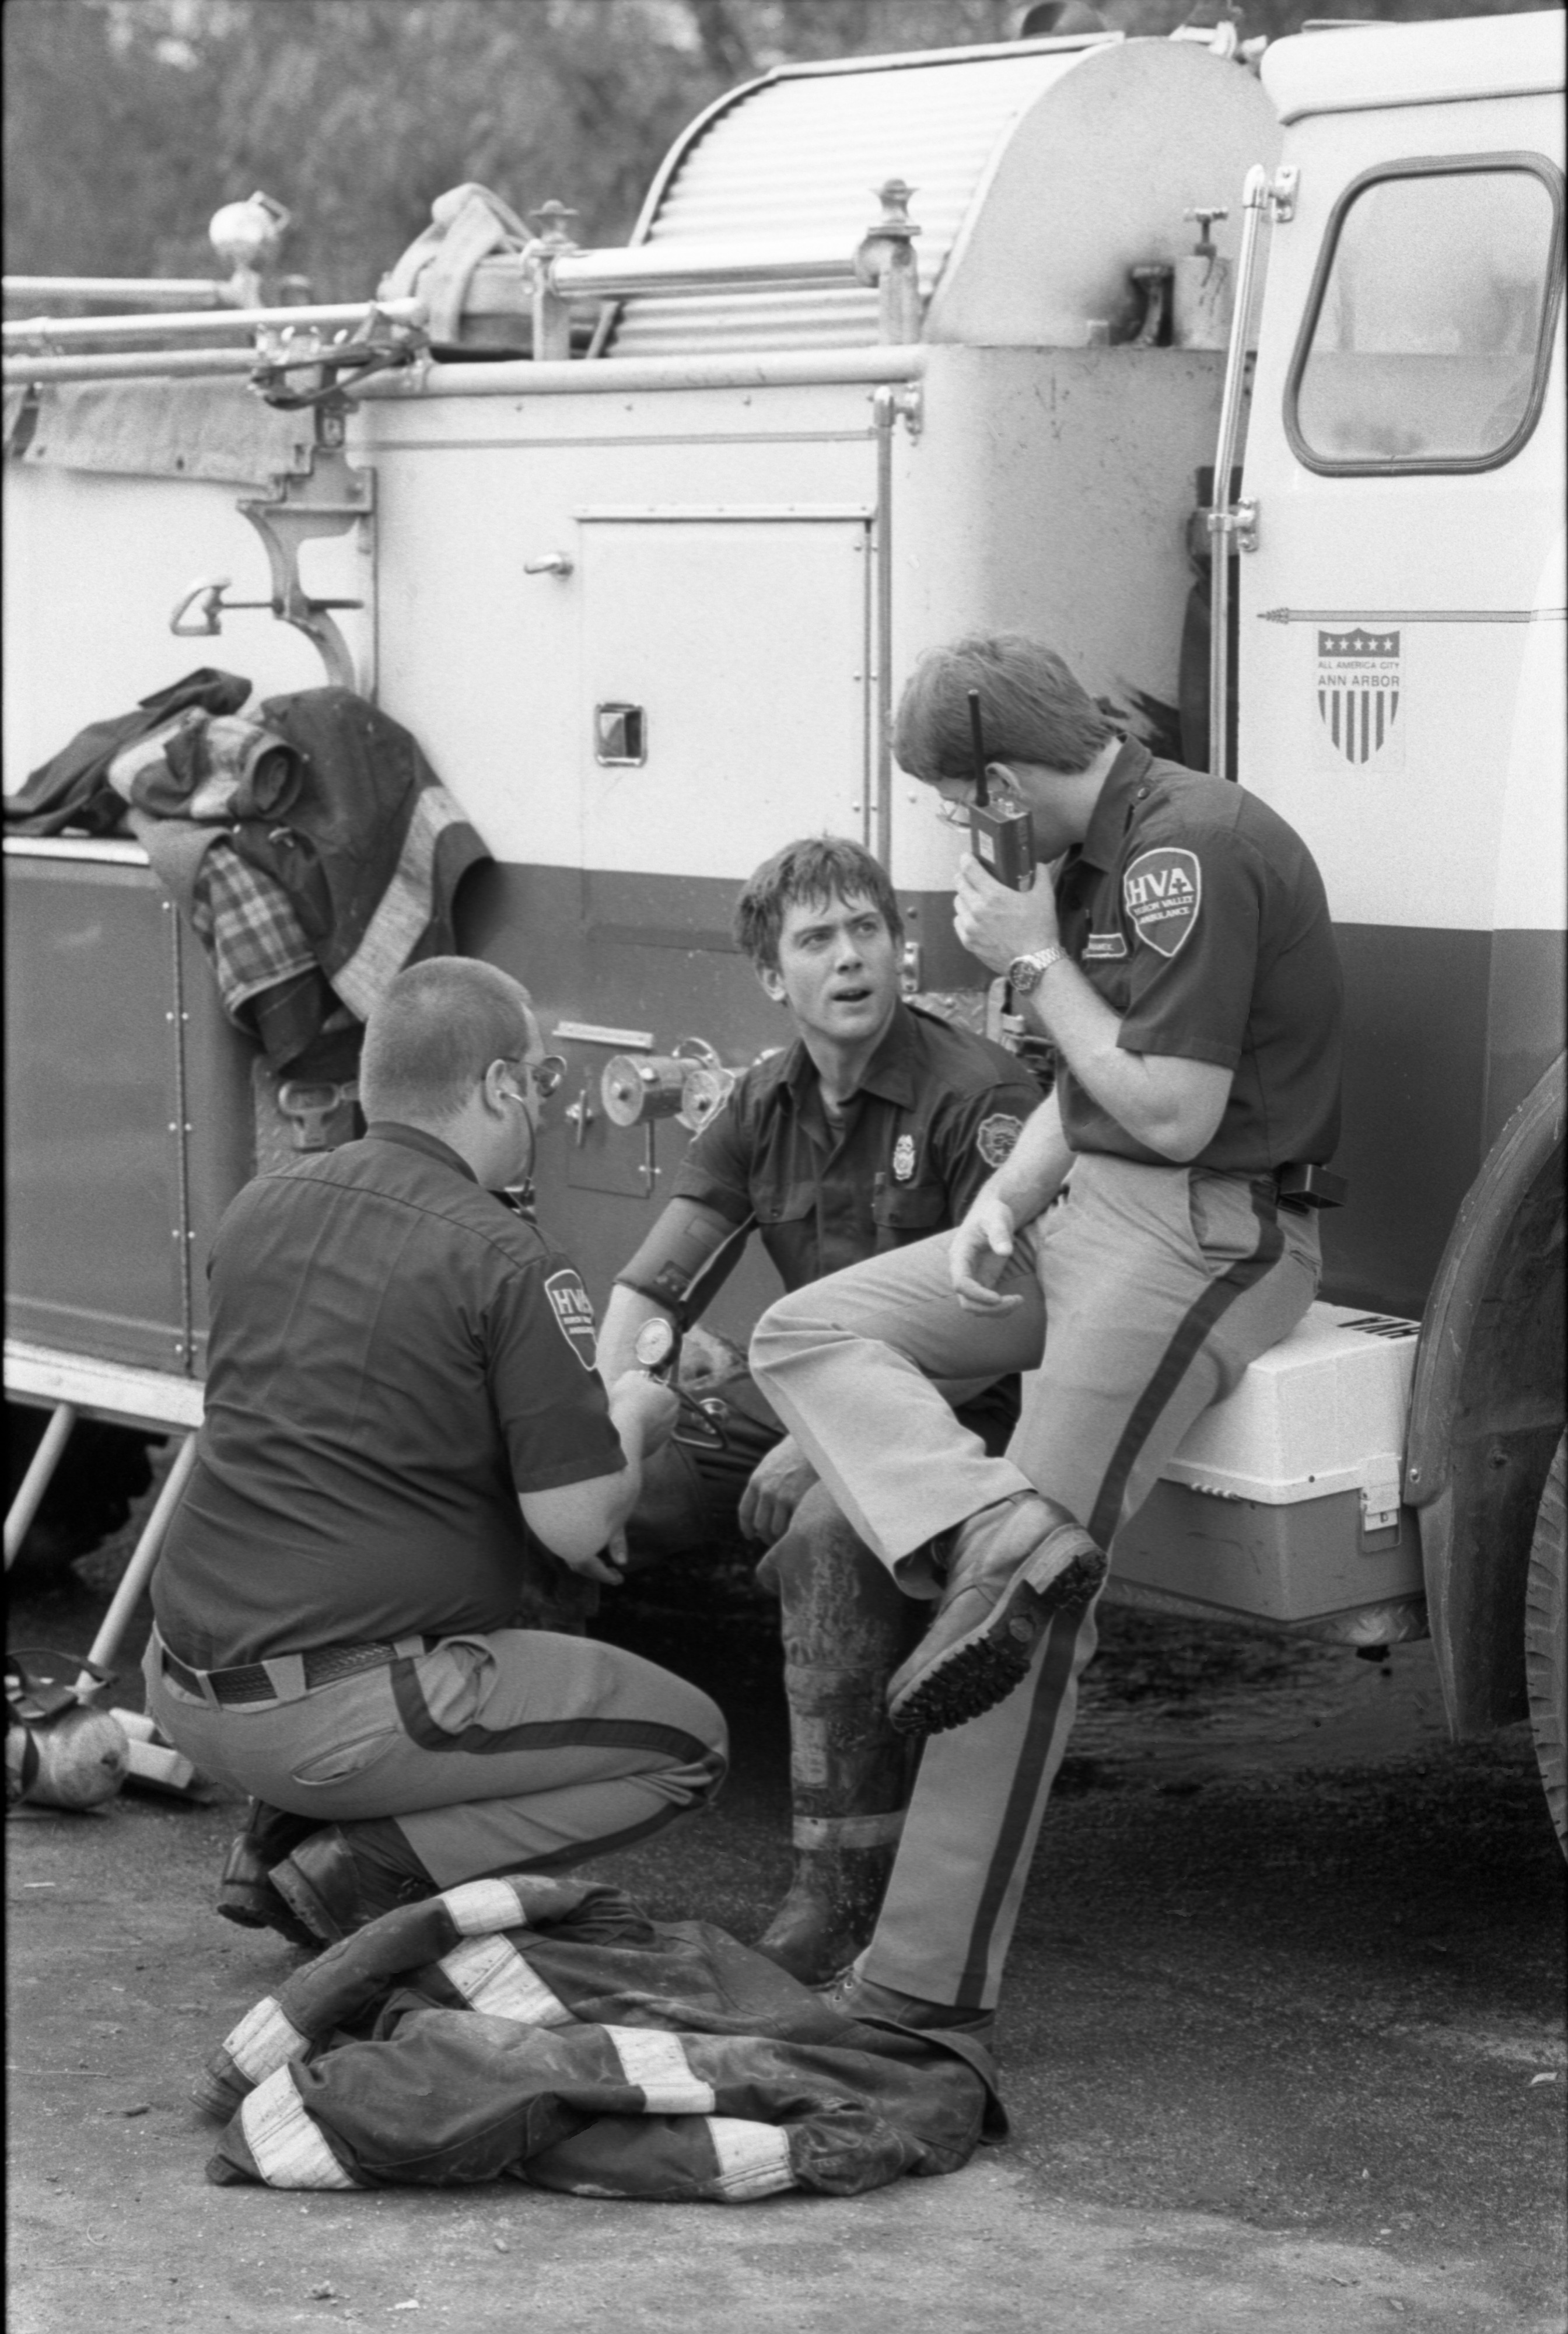 Firefighter, Vince Lynch, Gets Check-Up By Paramedics After Fire At The Hikone Court Townhomes, September 24, 1986 image